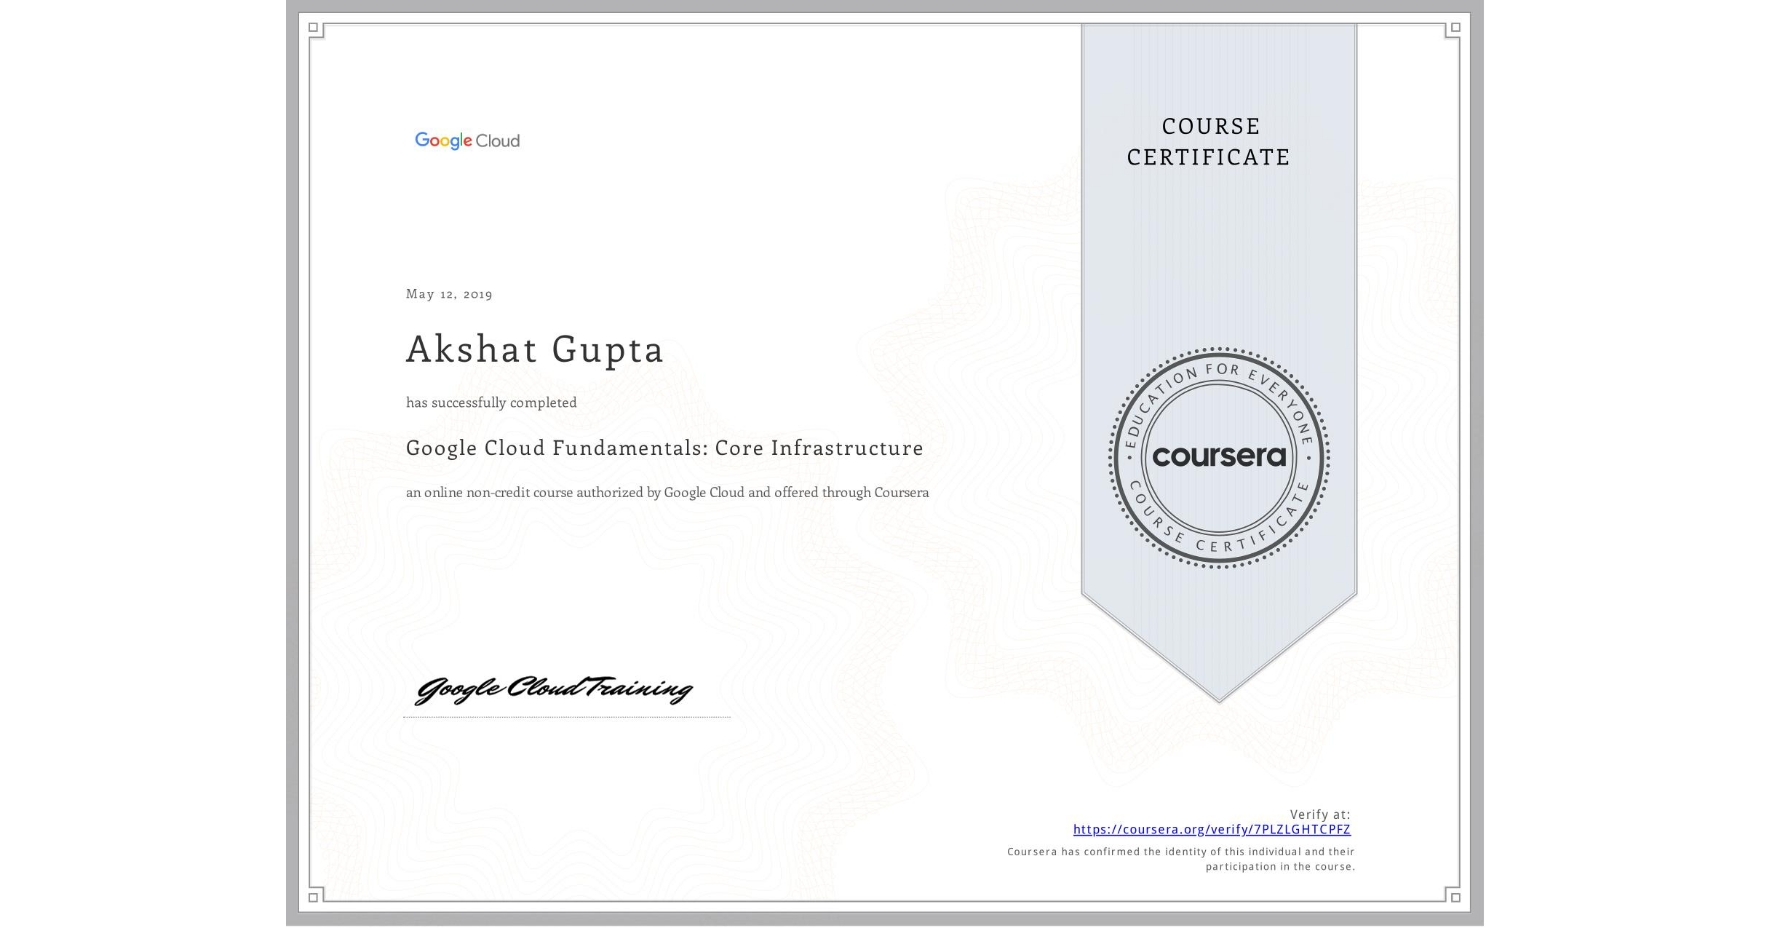 View certificate for Akshat Gupta, Google Cloud Platform Fundamentals: Core Infrastructure, an online non-credit course authorized by Google Cloud and offered through Coursera